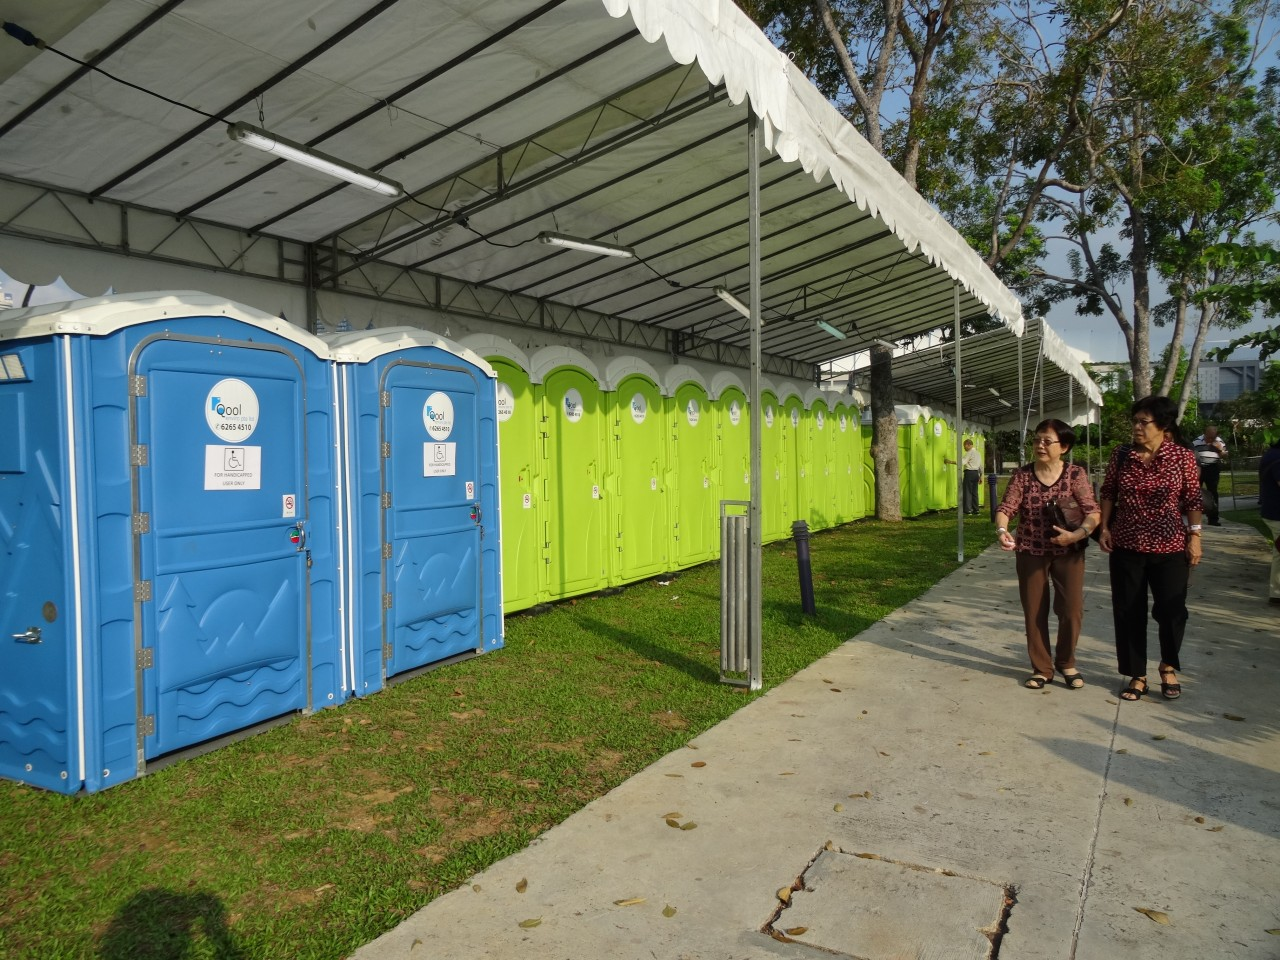 qool enviro portable toilet in moe celebrate sg50 1